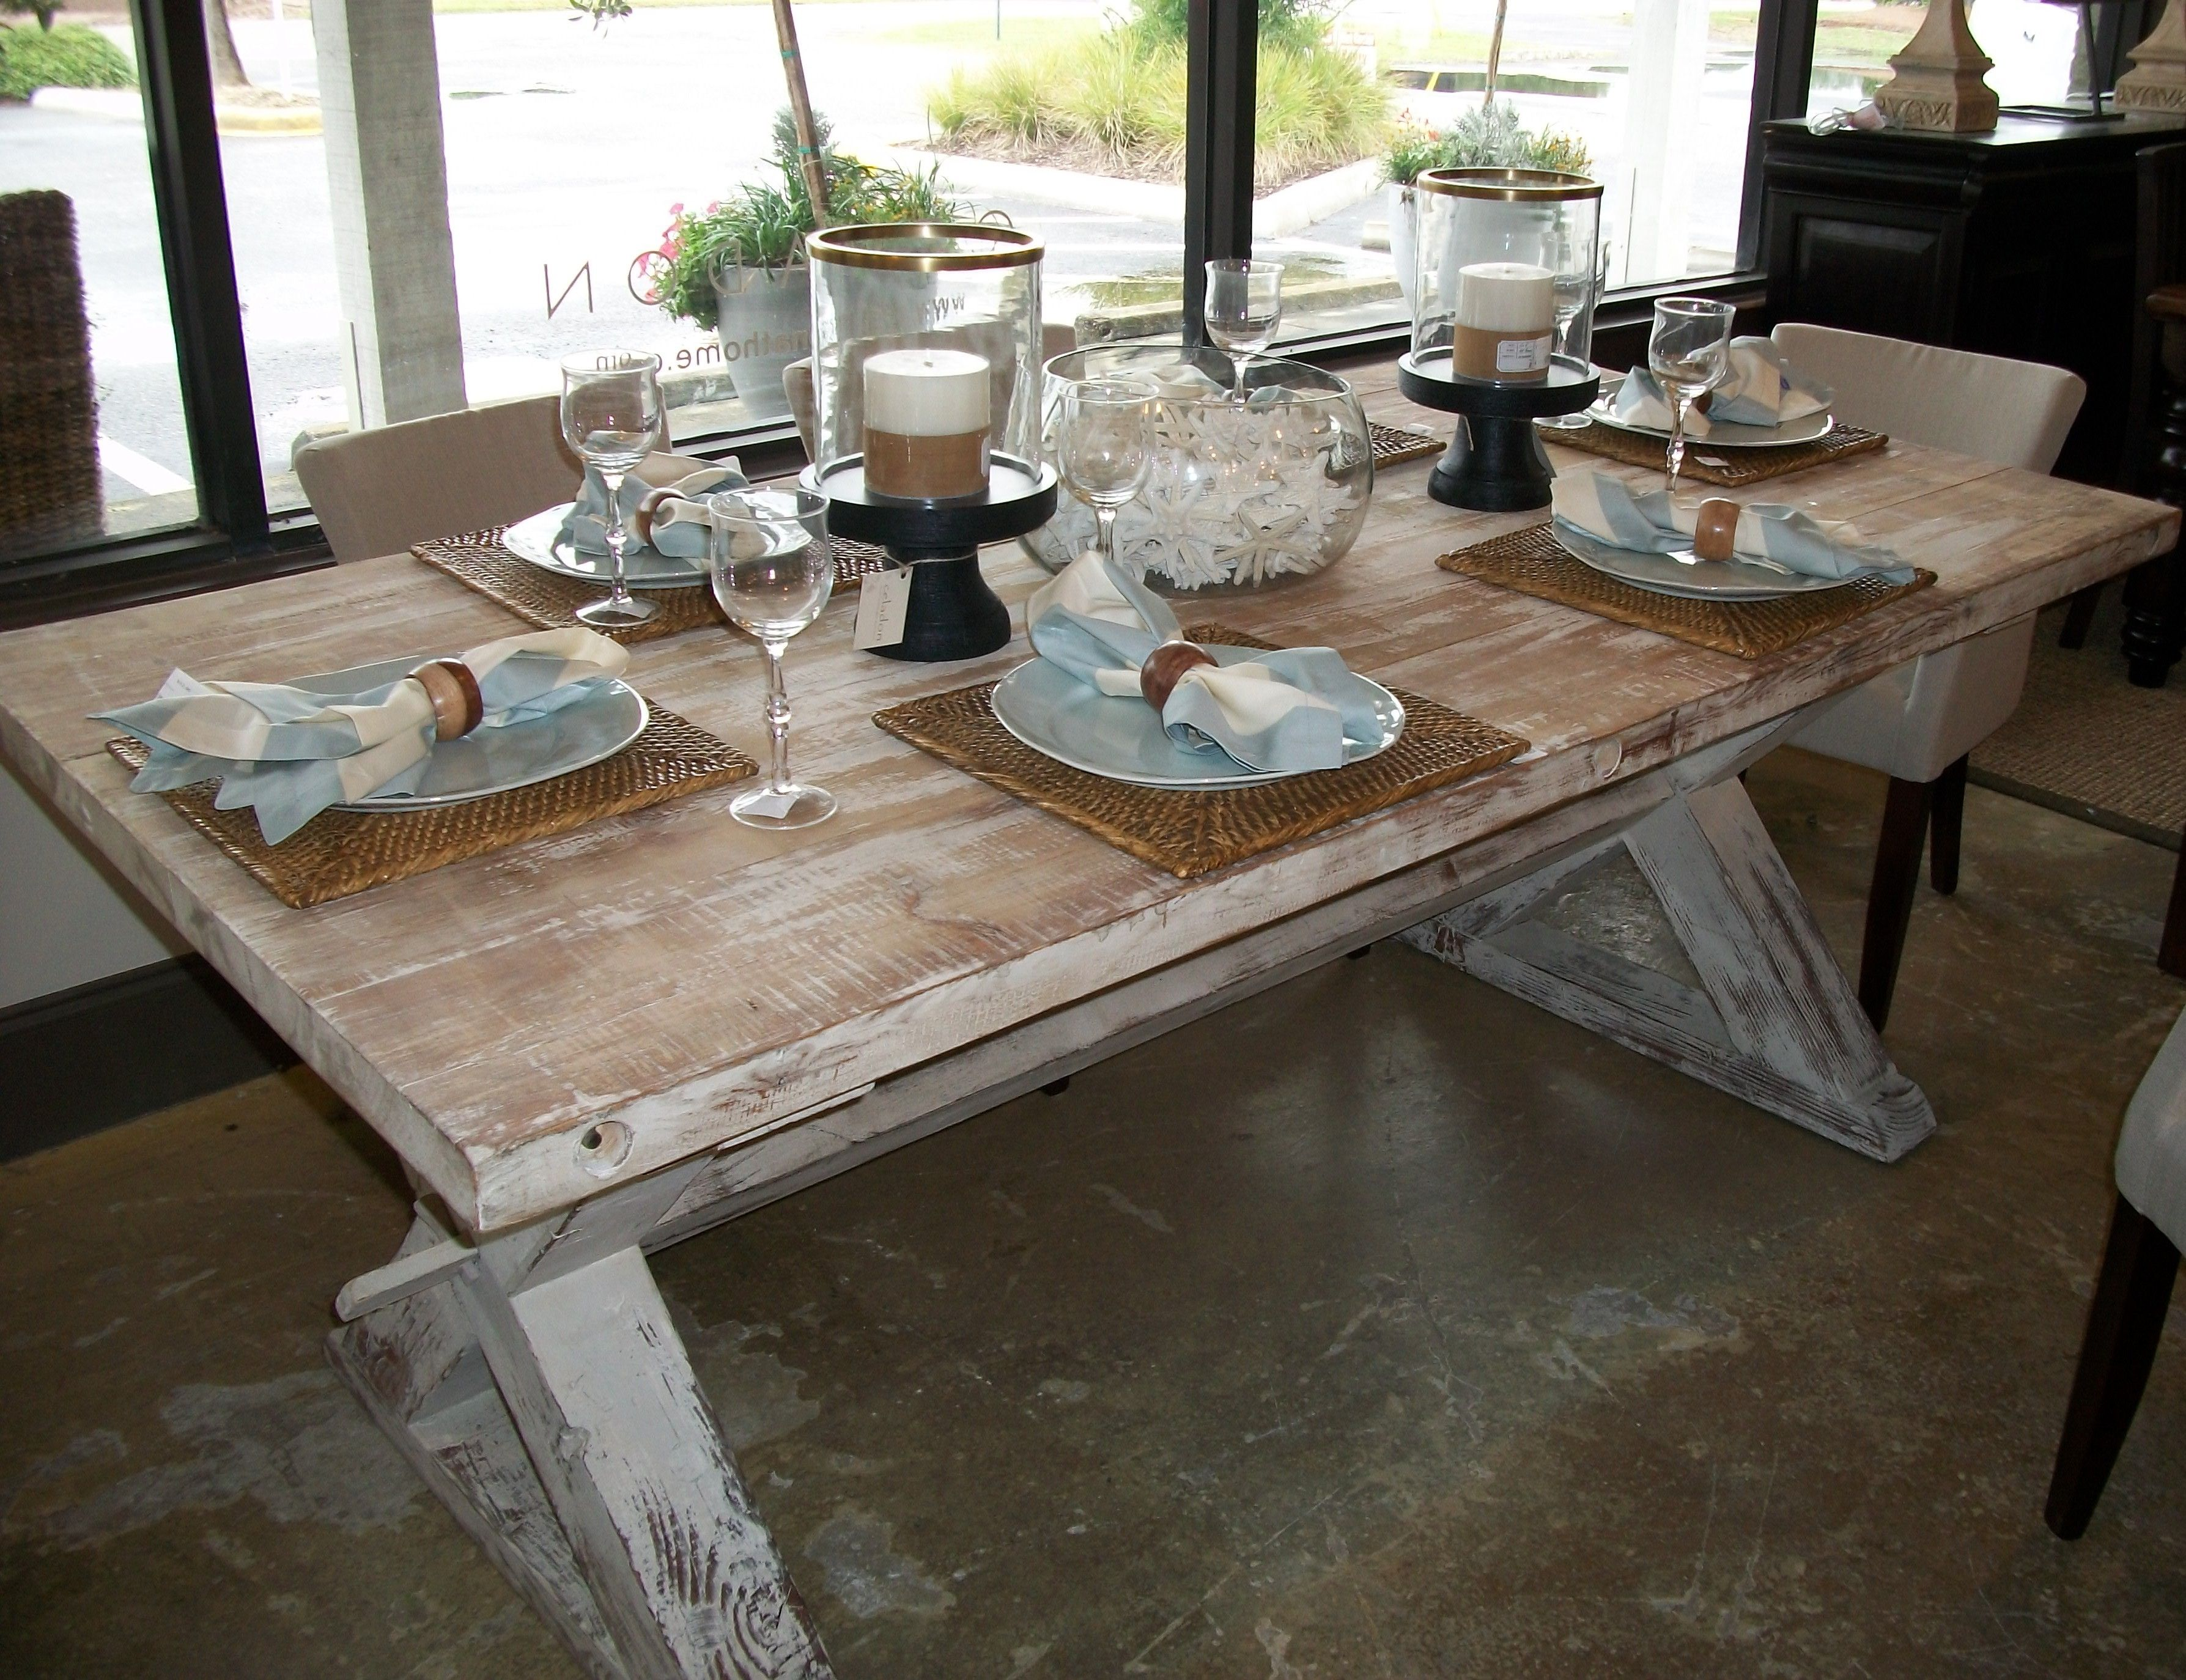 Furniture Classic Unfinished Farmhouse Table With Braided Cloth And Luxury Candle Holder Jar In Vintage Dining Room Design Inspiration Inspiring